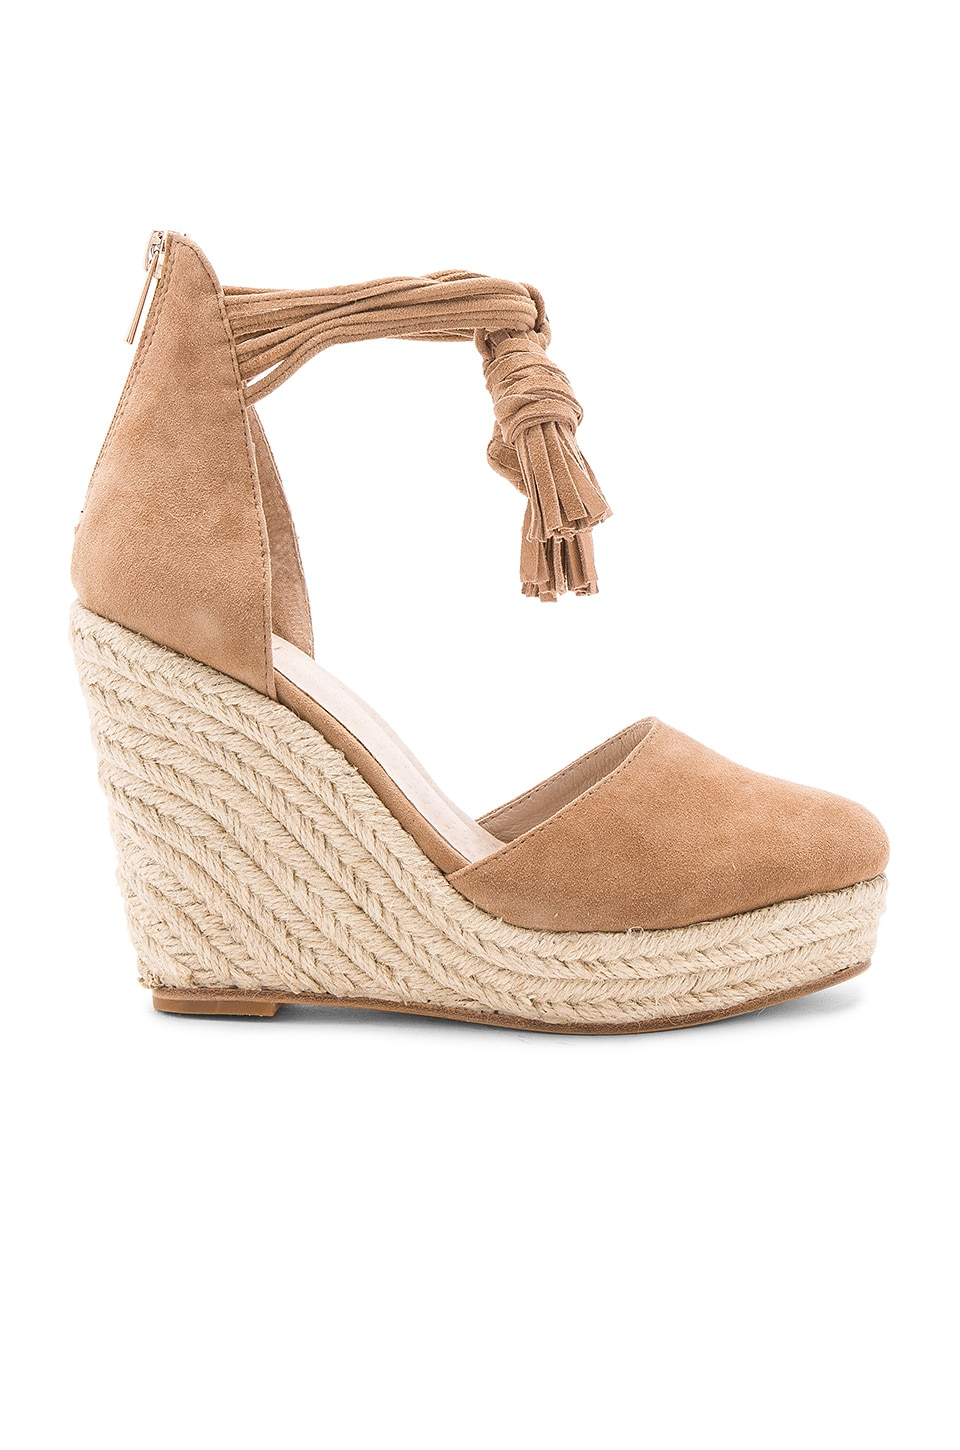 RAYE Dixie Wedge in Tan